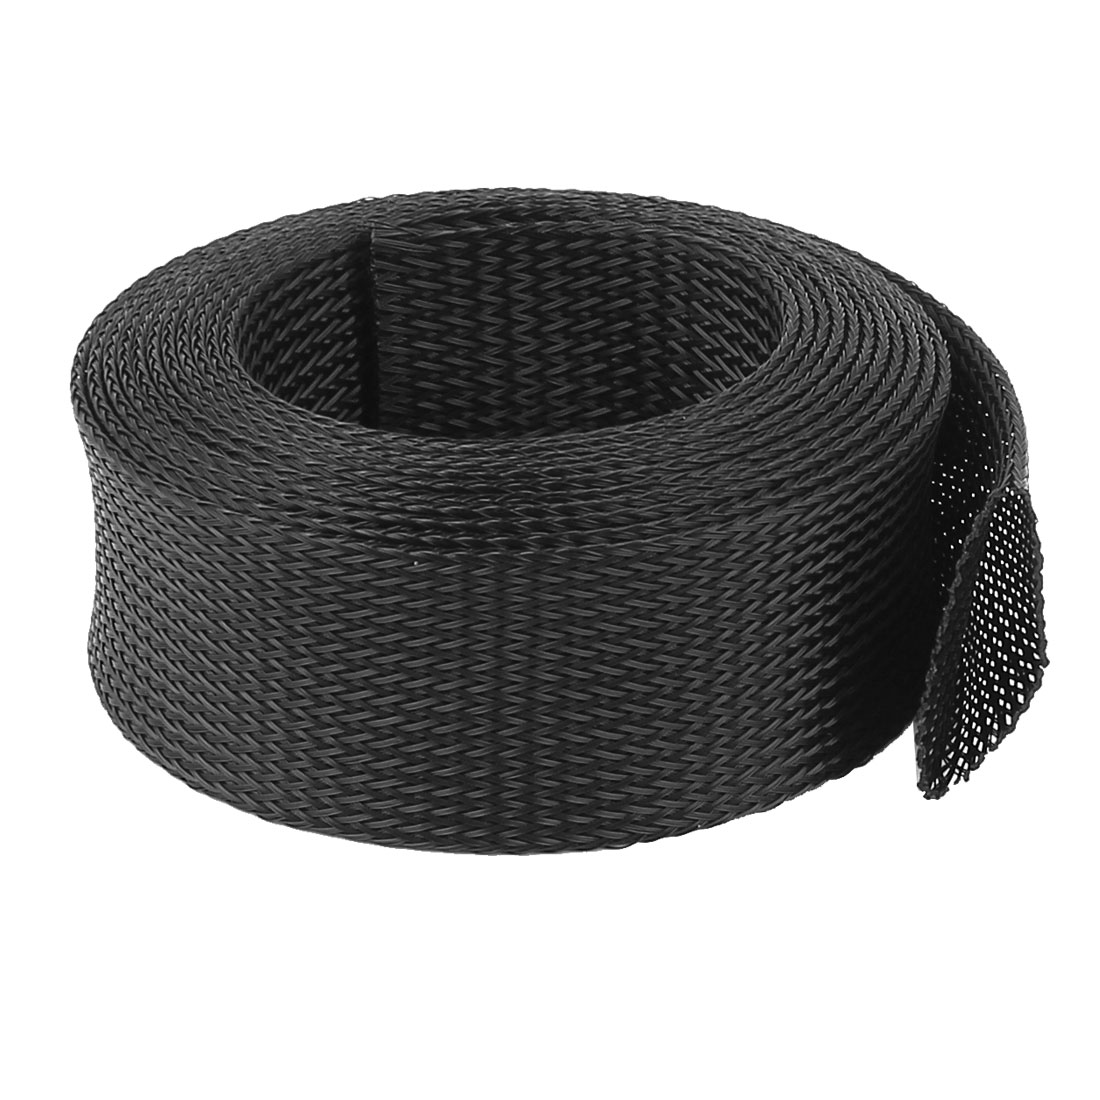 45mm PET Cable Wire Wrap Expandable Braided Sleeving 3 Meter